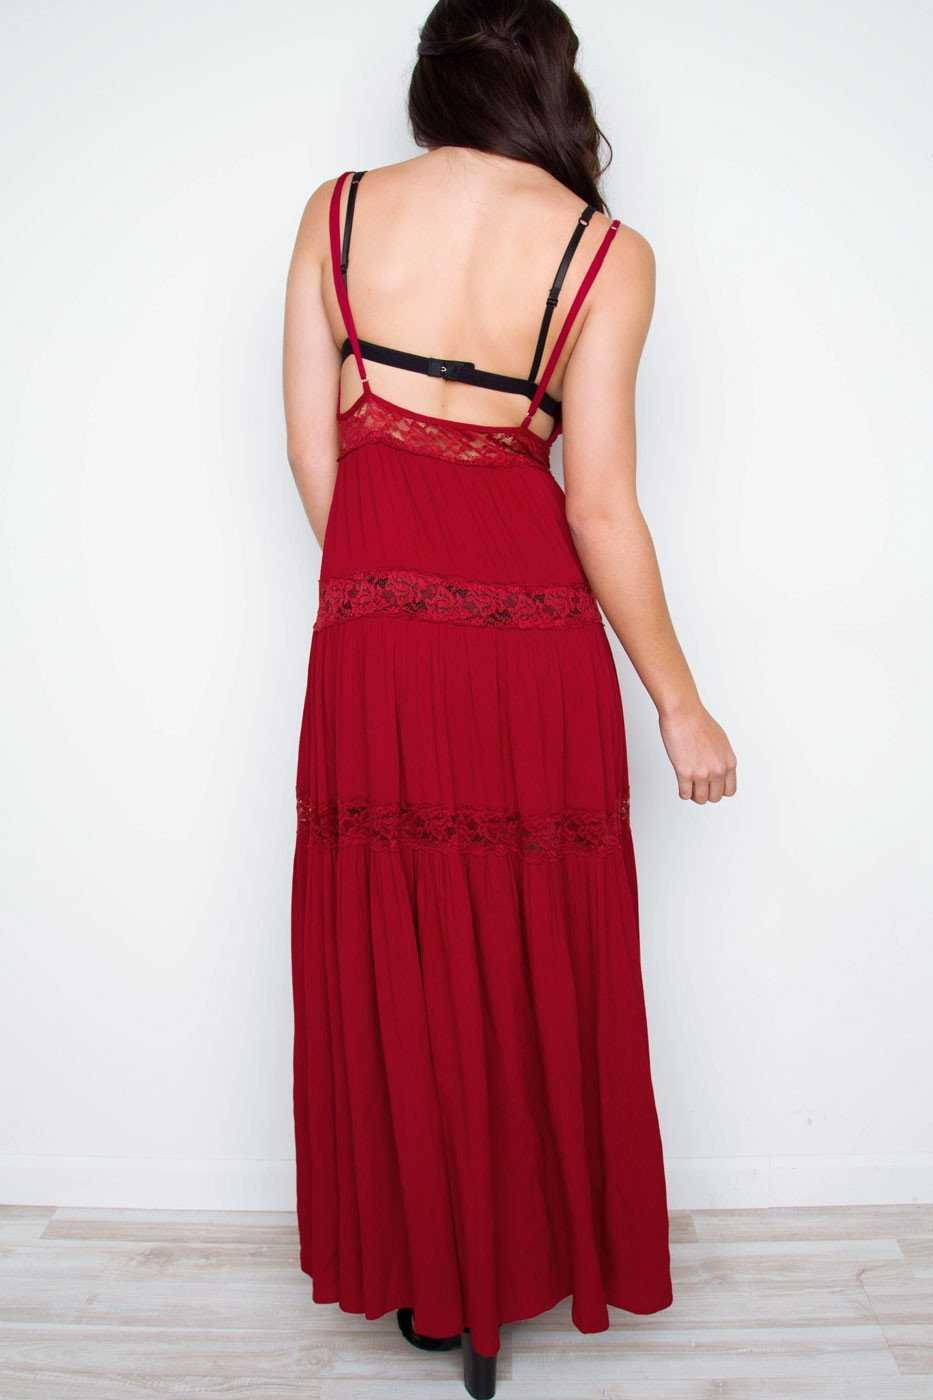 Dresses - Sunshine Soul Lace Maxi Dress - Burgundy